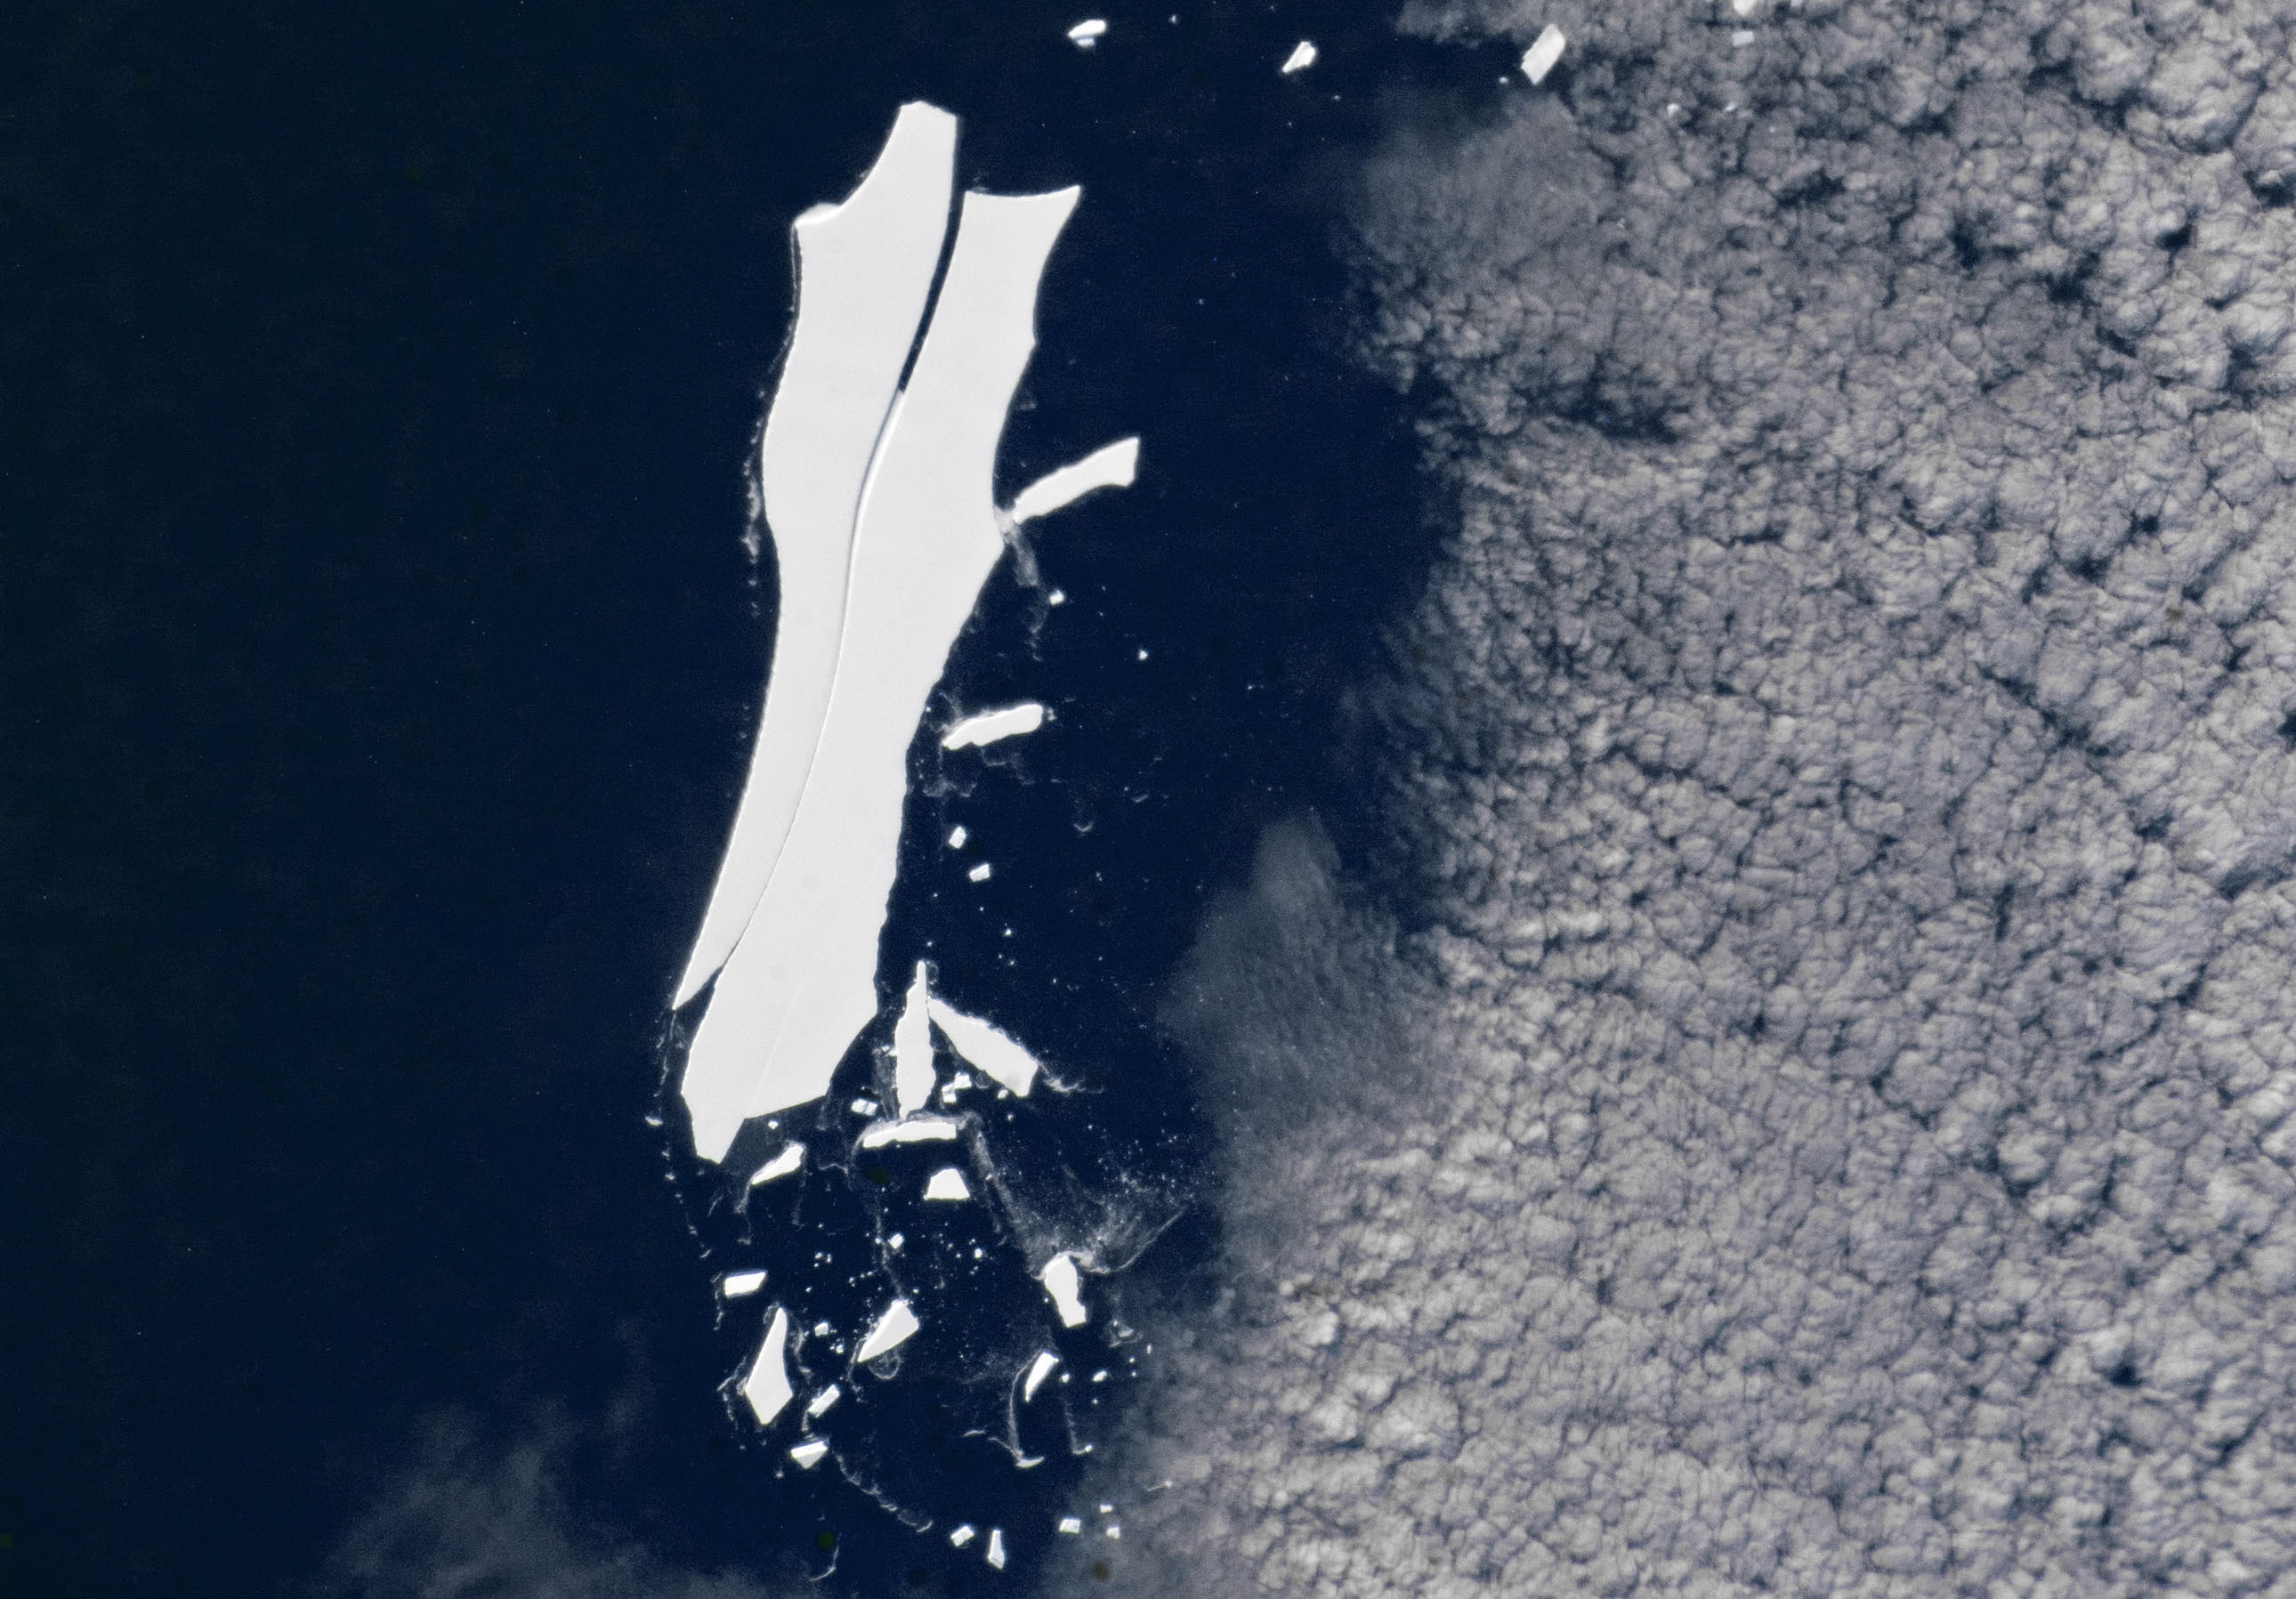 After 18 years of drifting around at sea, the world's largest iceberg will soon vanish forever near the Equator.